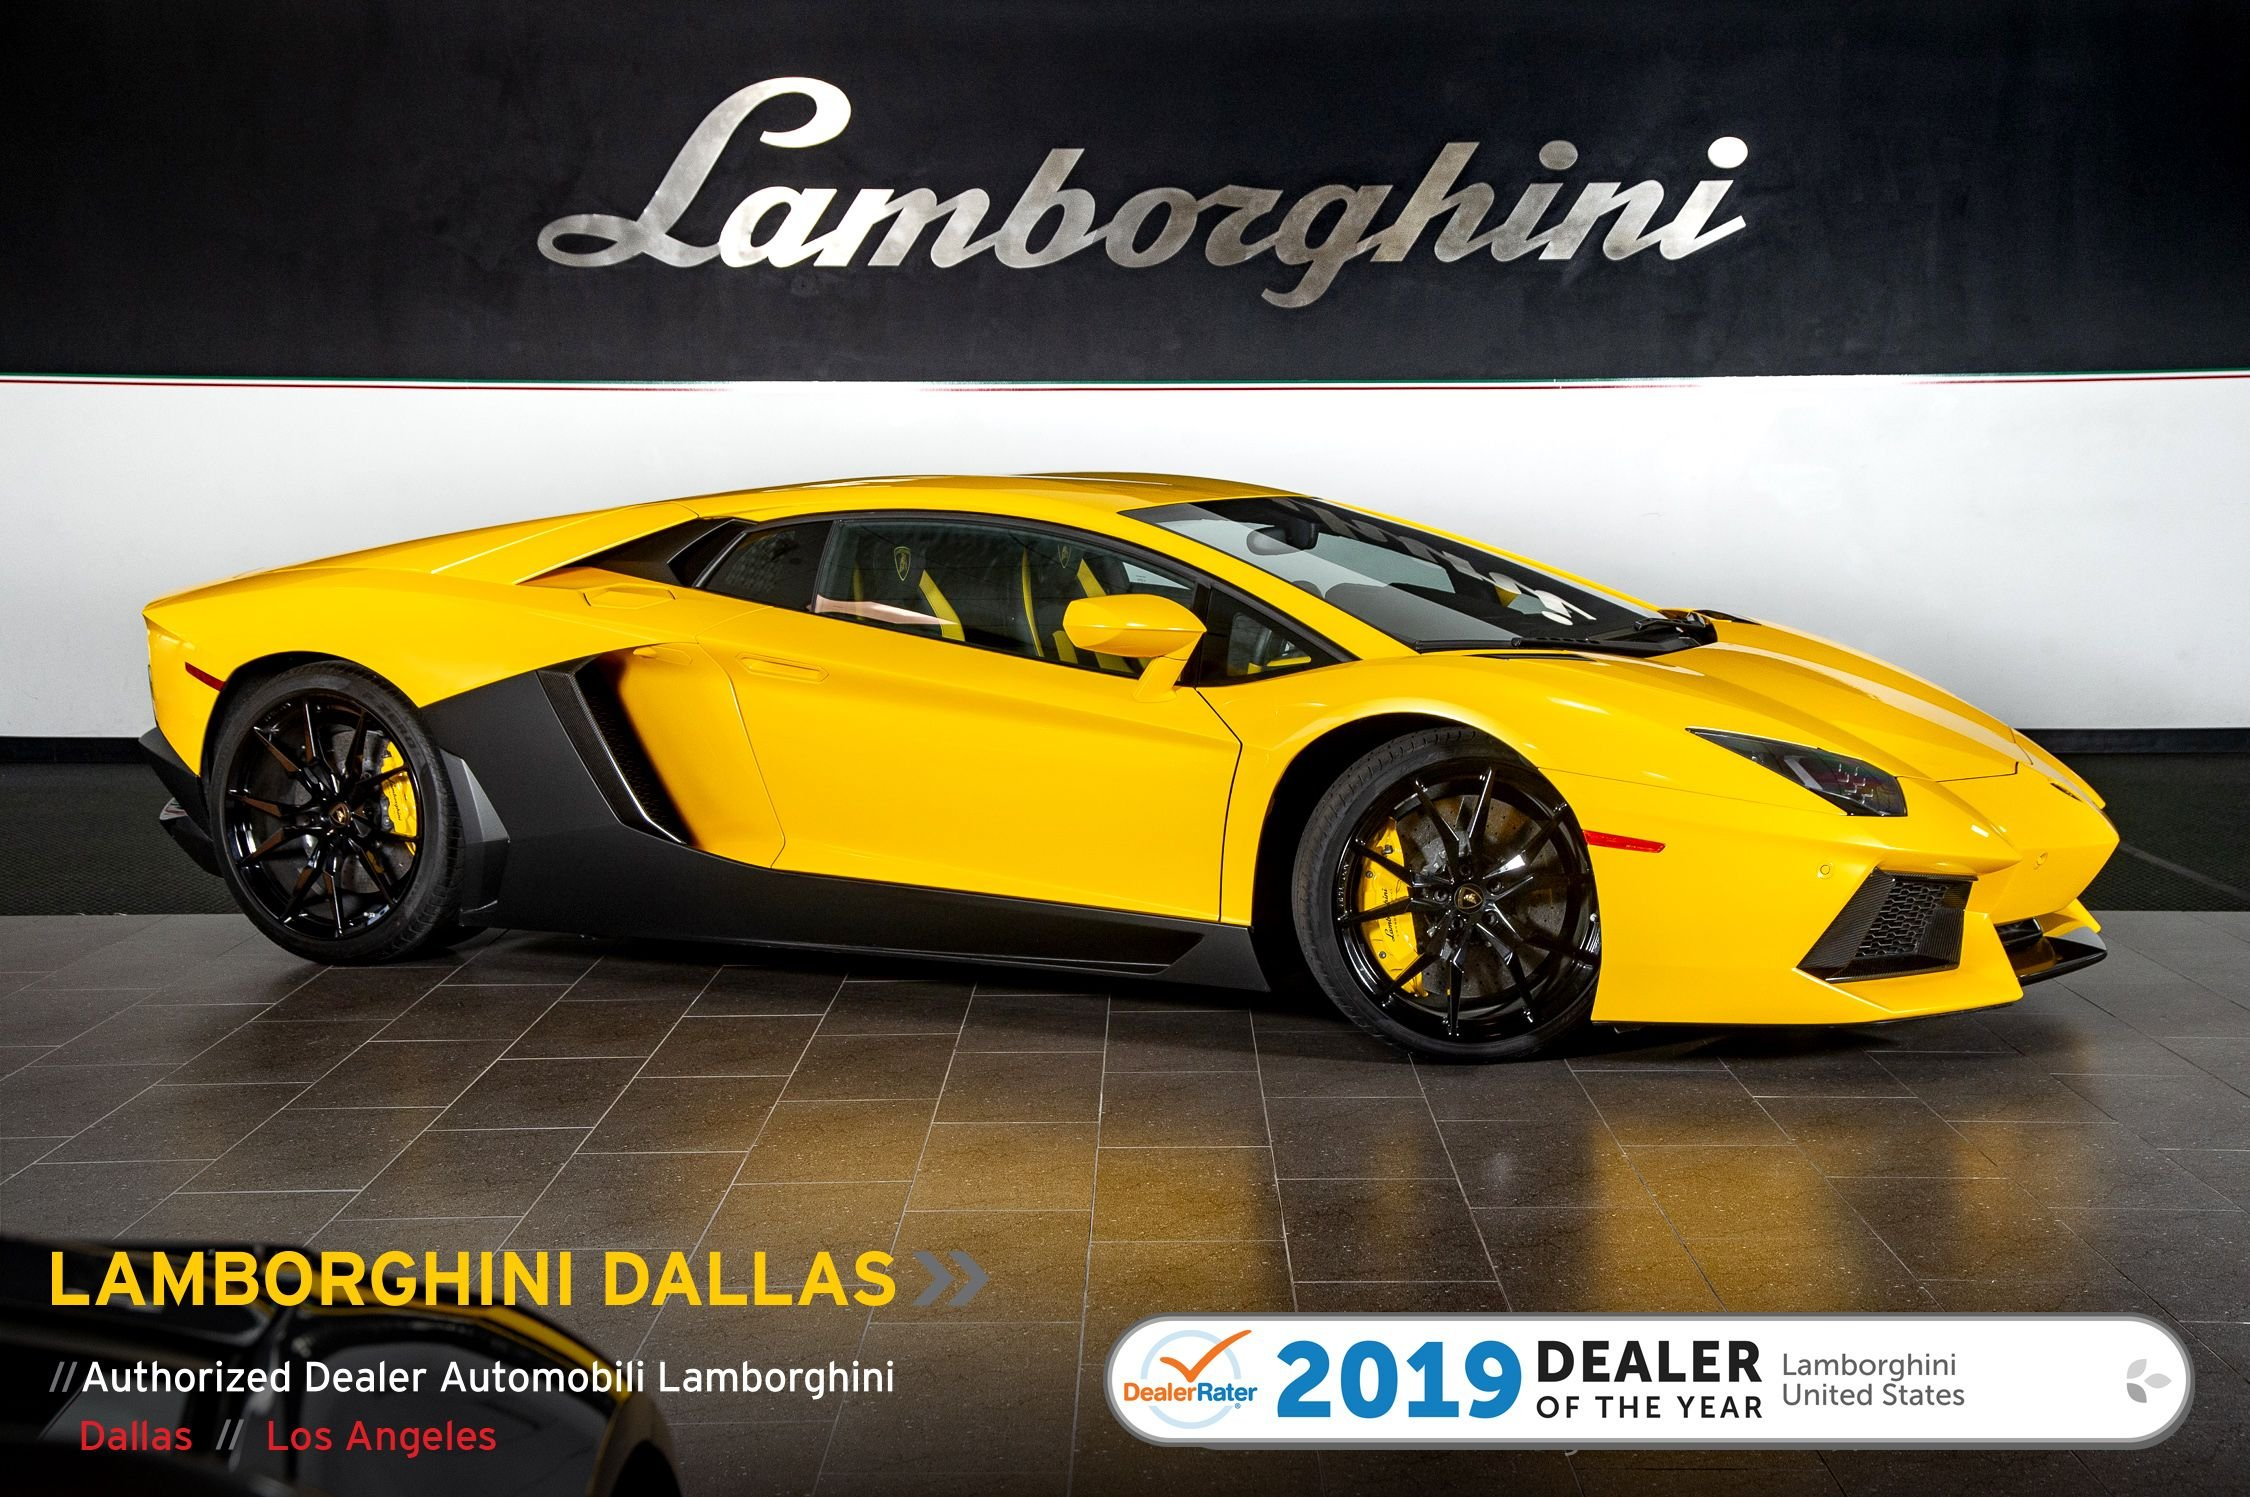 Used 2015 Lamborghini Aventador For Sale Richardson Tx Stock Lc605 Vin Zhwuc1zd4fla03909